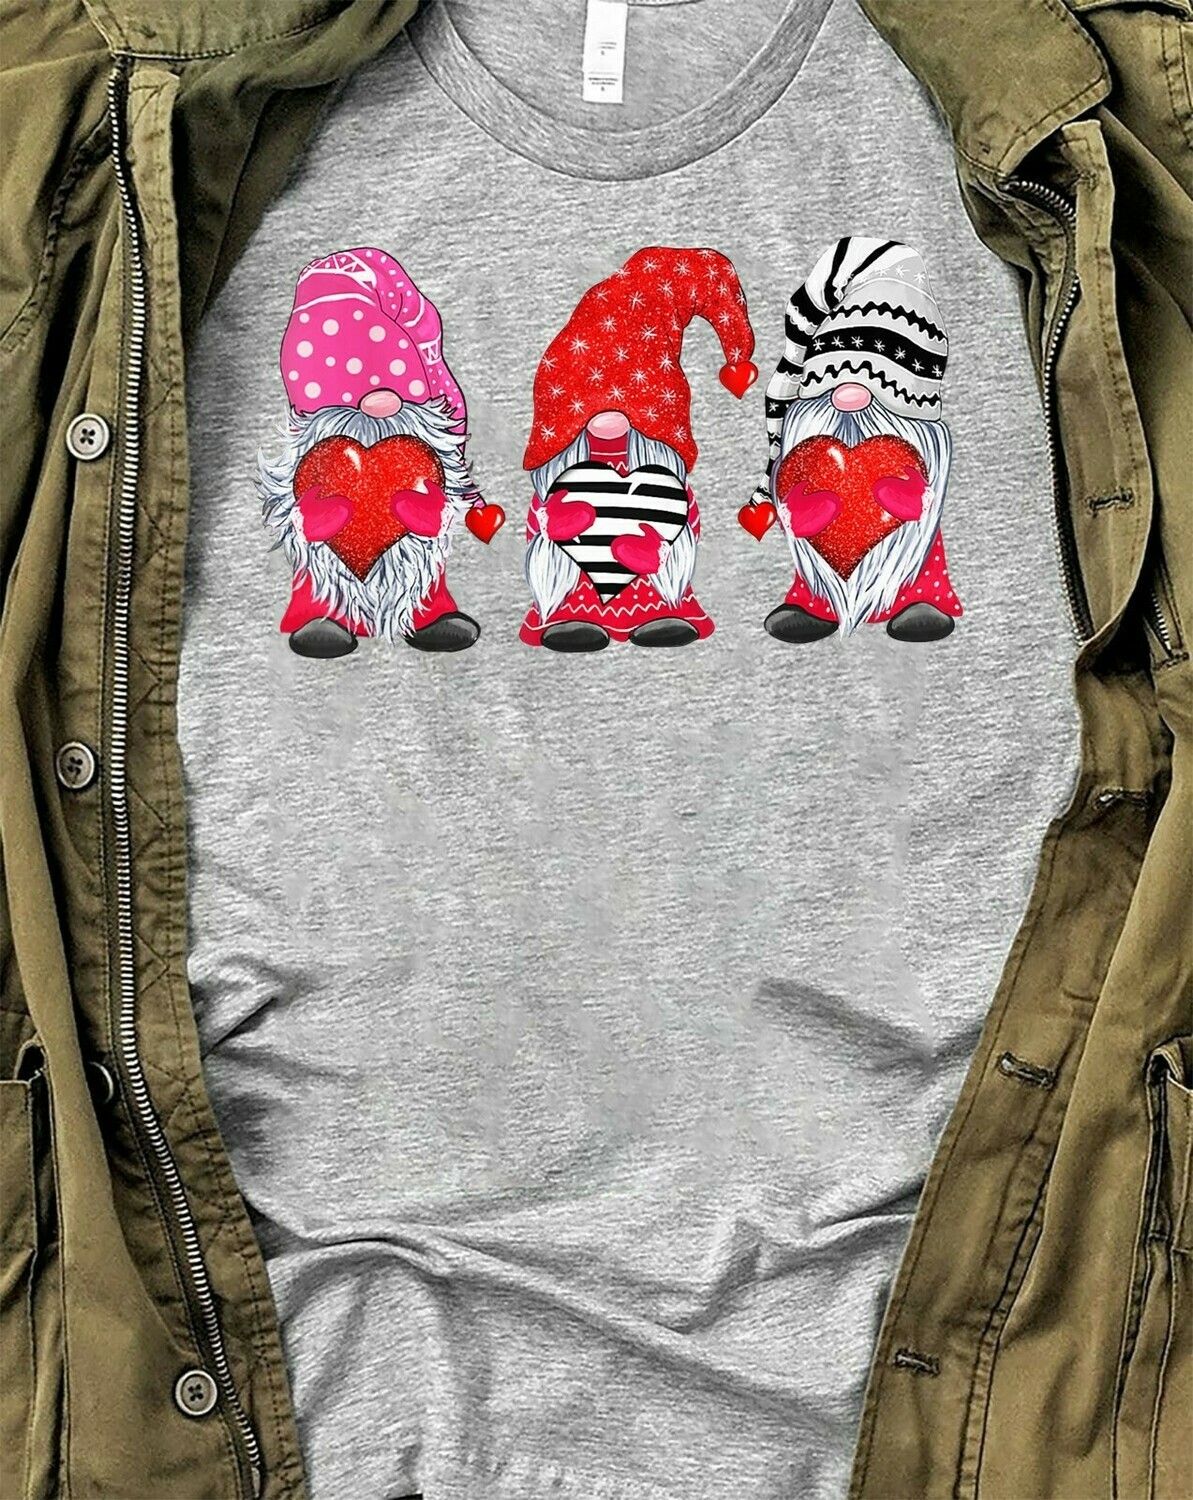 Valentine's Day Heart Gnome,Couple Mr and Mrs Gnome Love Valentine,Lovin' All My Gnomies Heart  T-Shirt Hoodie Sweatshirt Sweater Tee Kids Youth Gifts Jolly Family Gifts